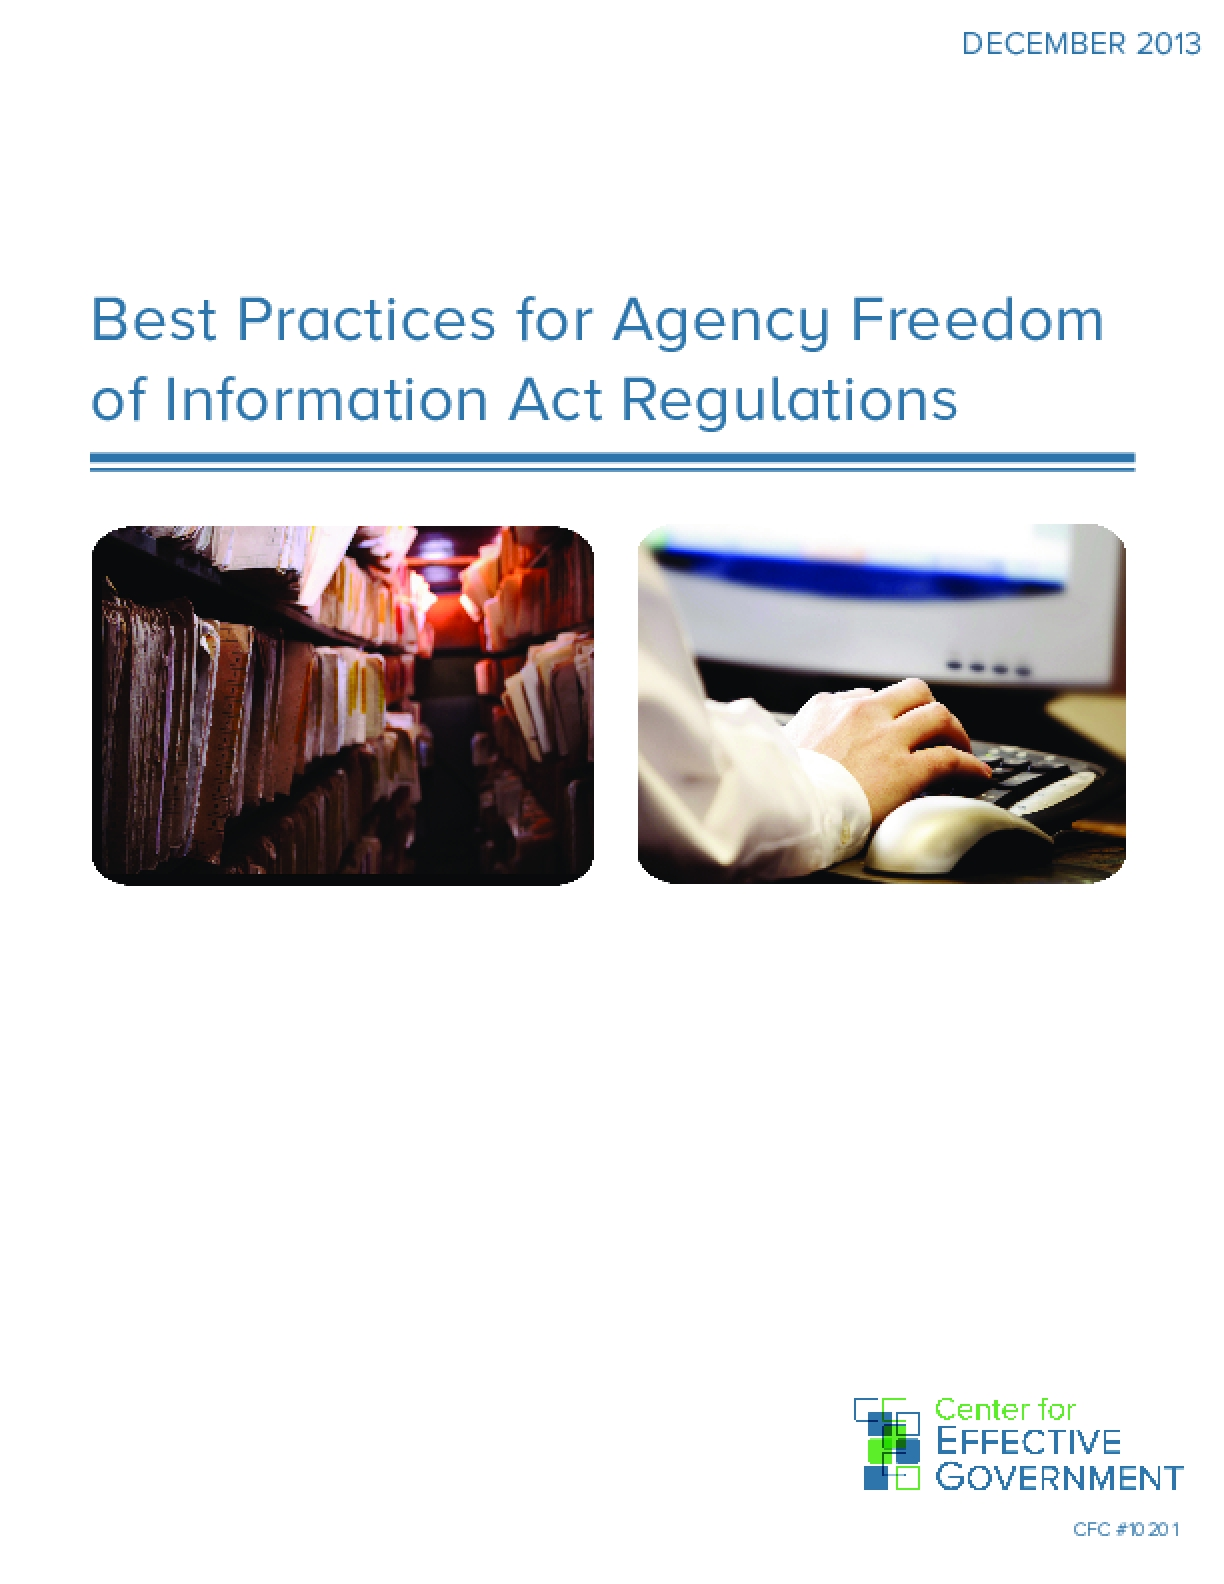 Best Practices for Agency Freedom of Information Act Regulations